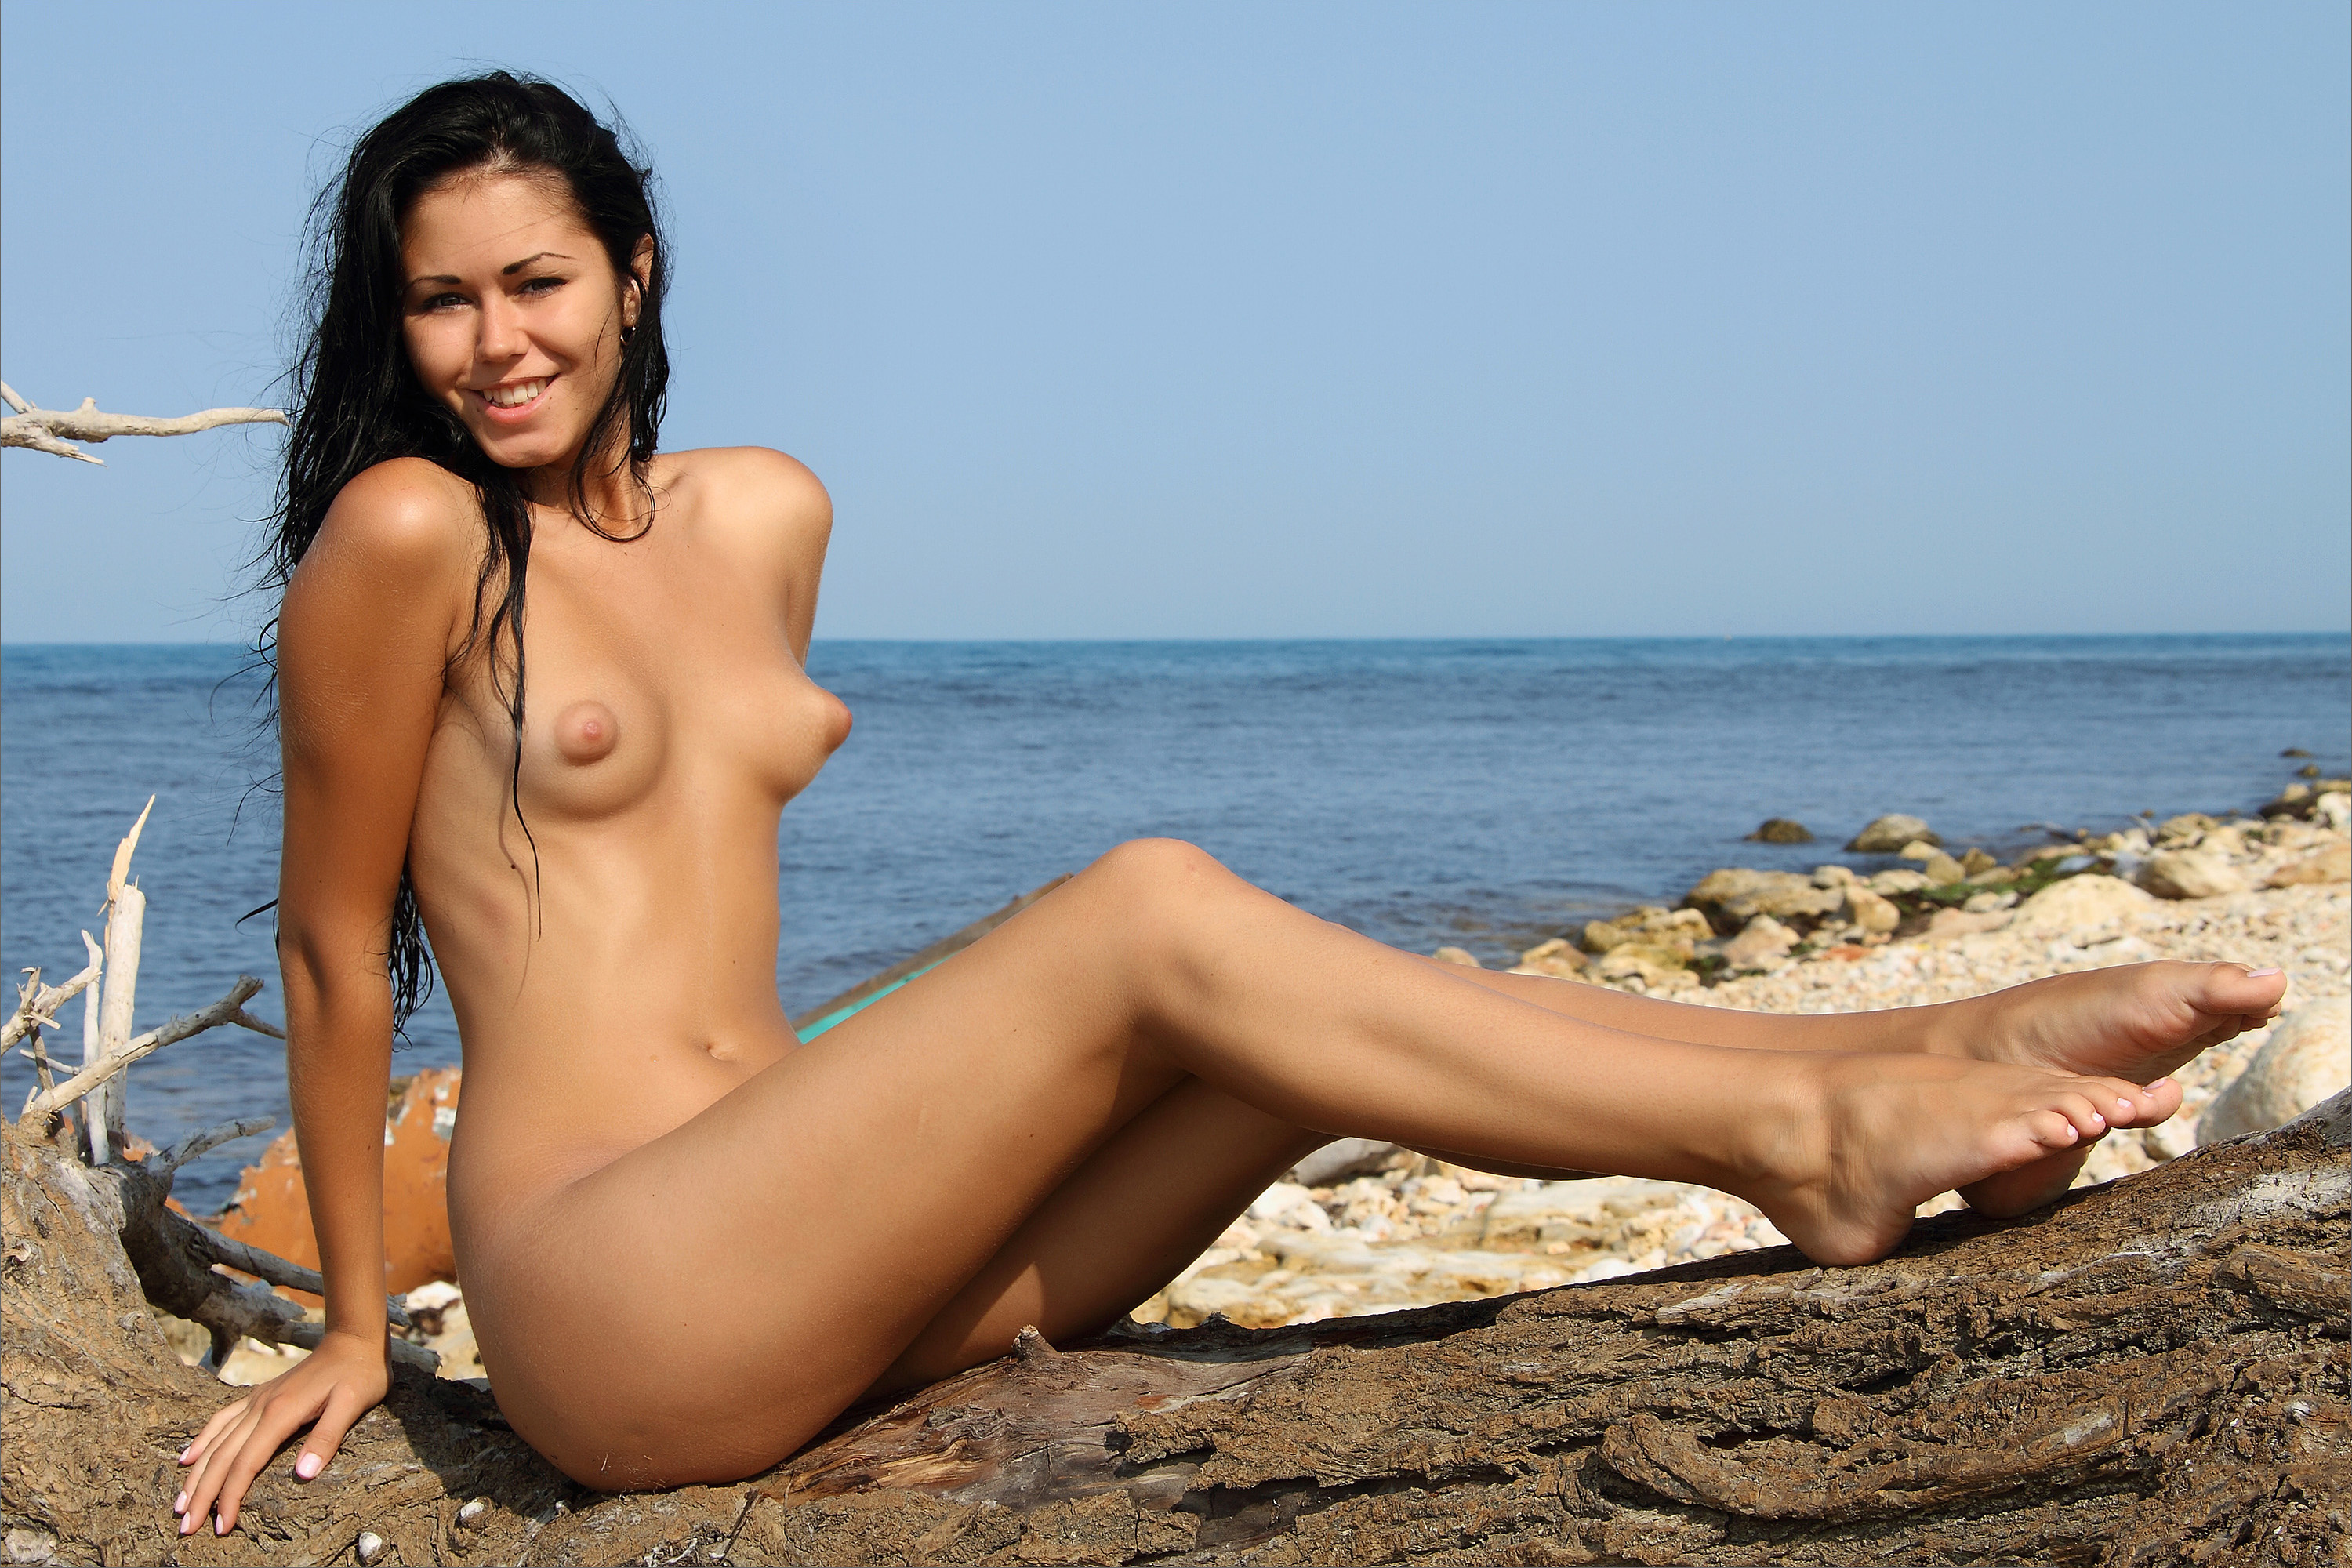 Best nude beach photos 15